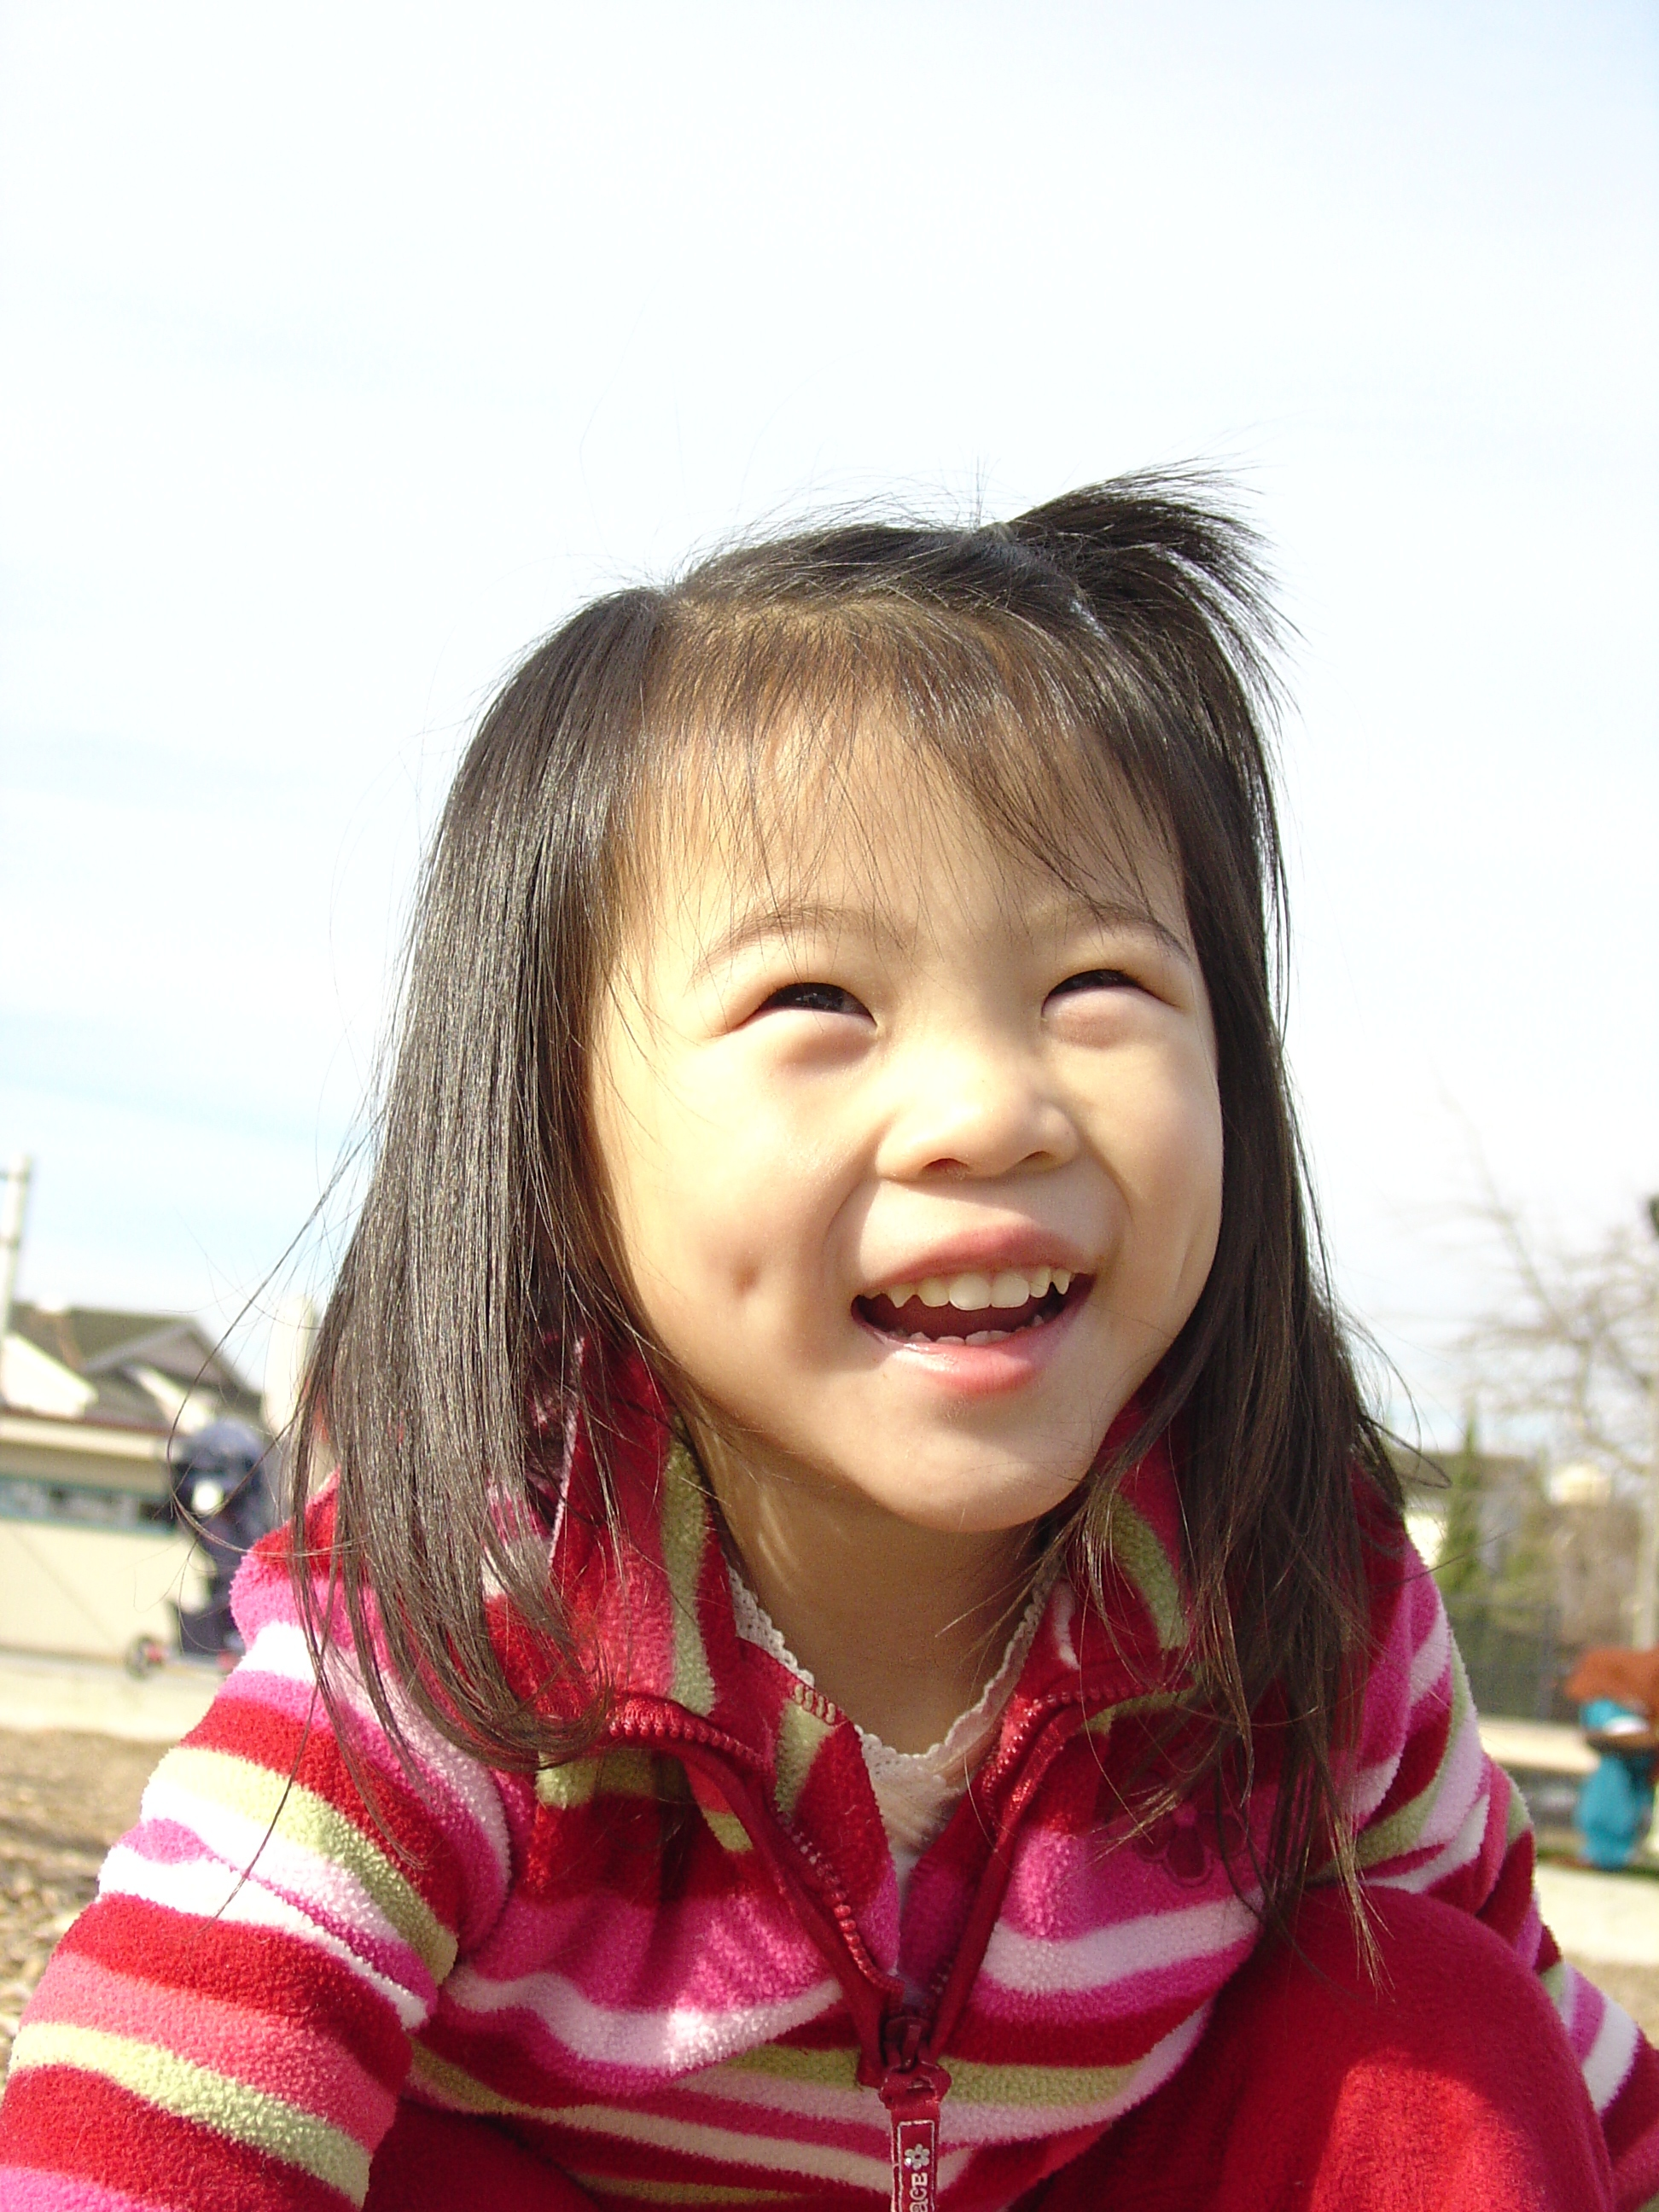 File:Asian girl with dimples.jpg